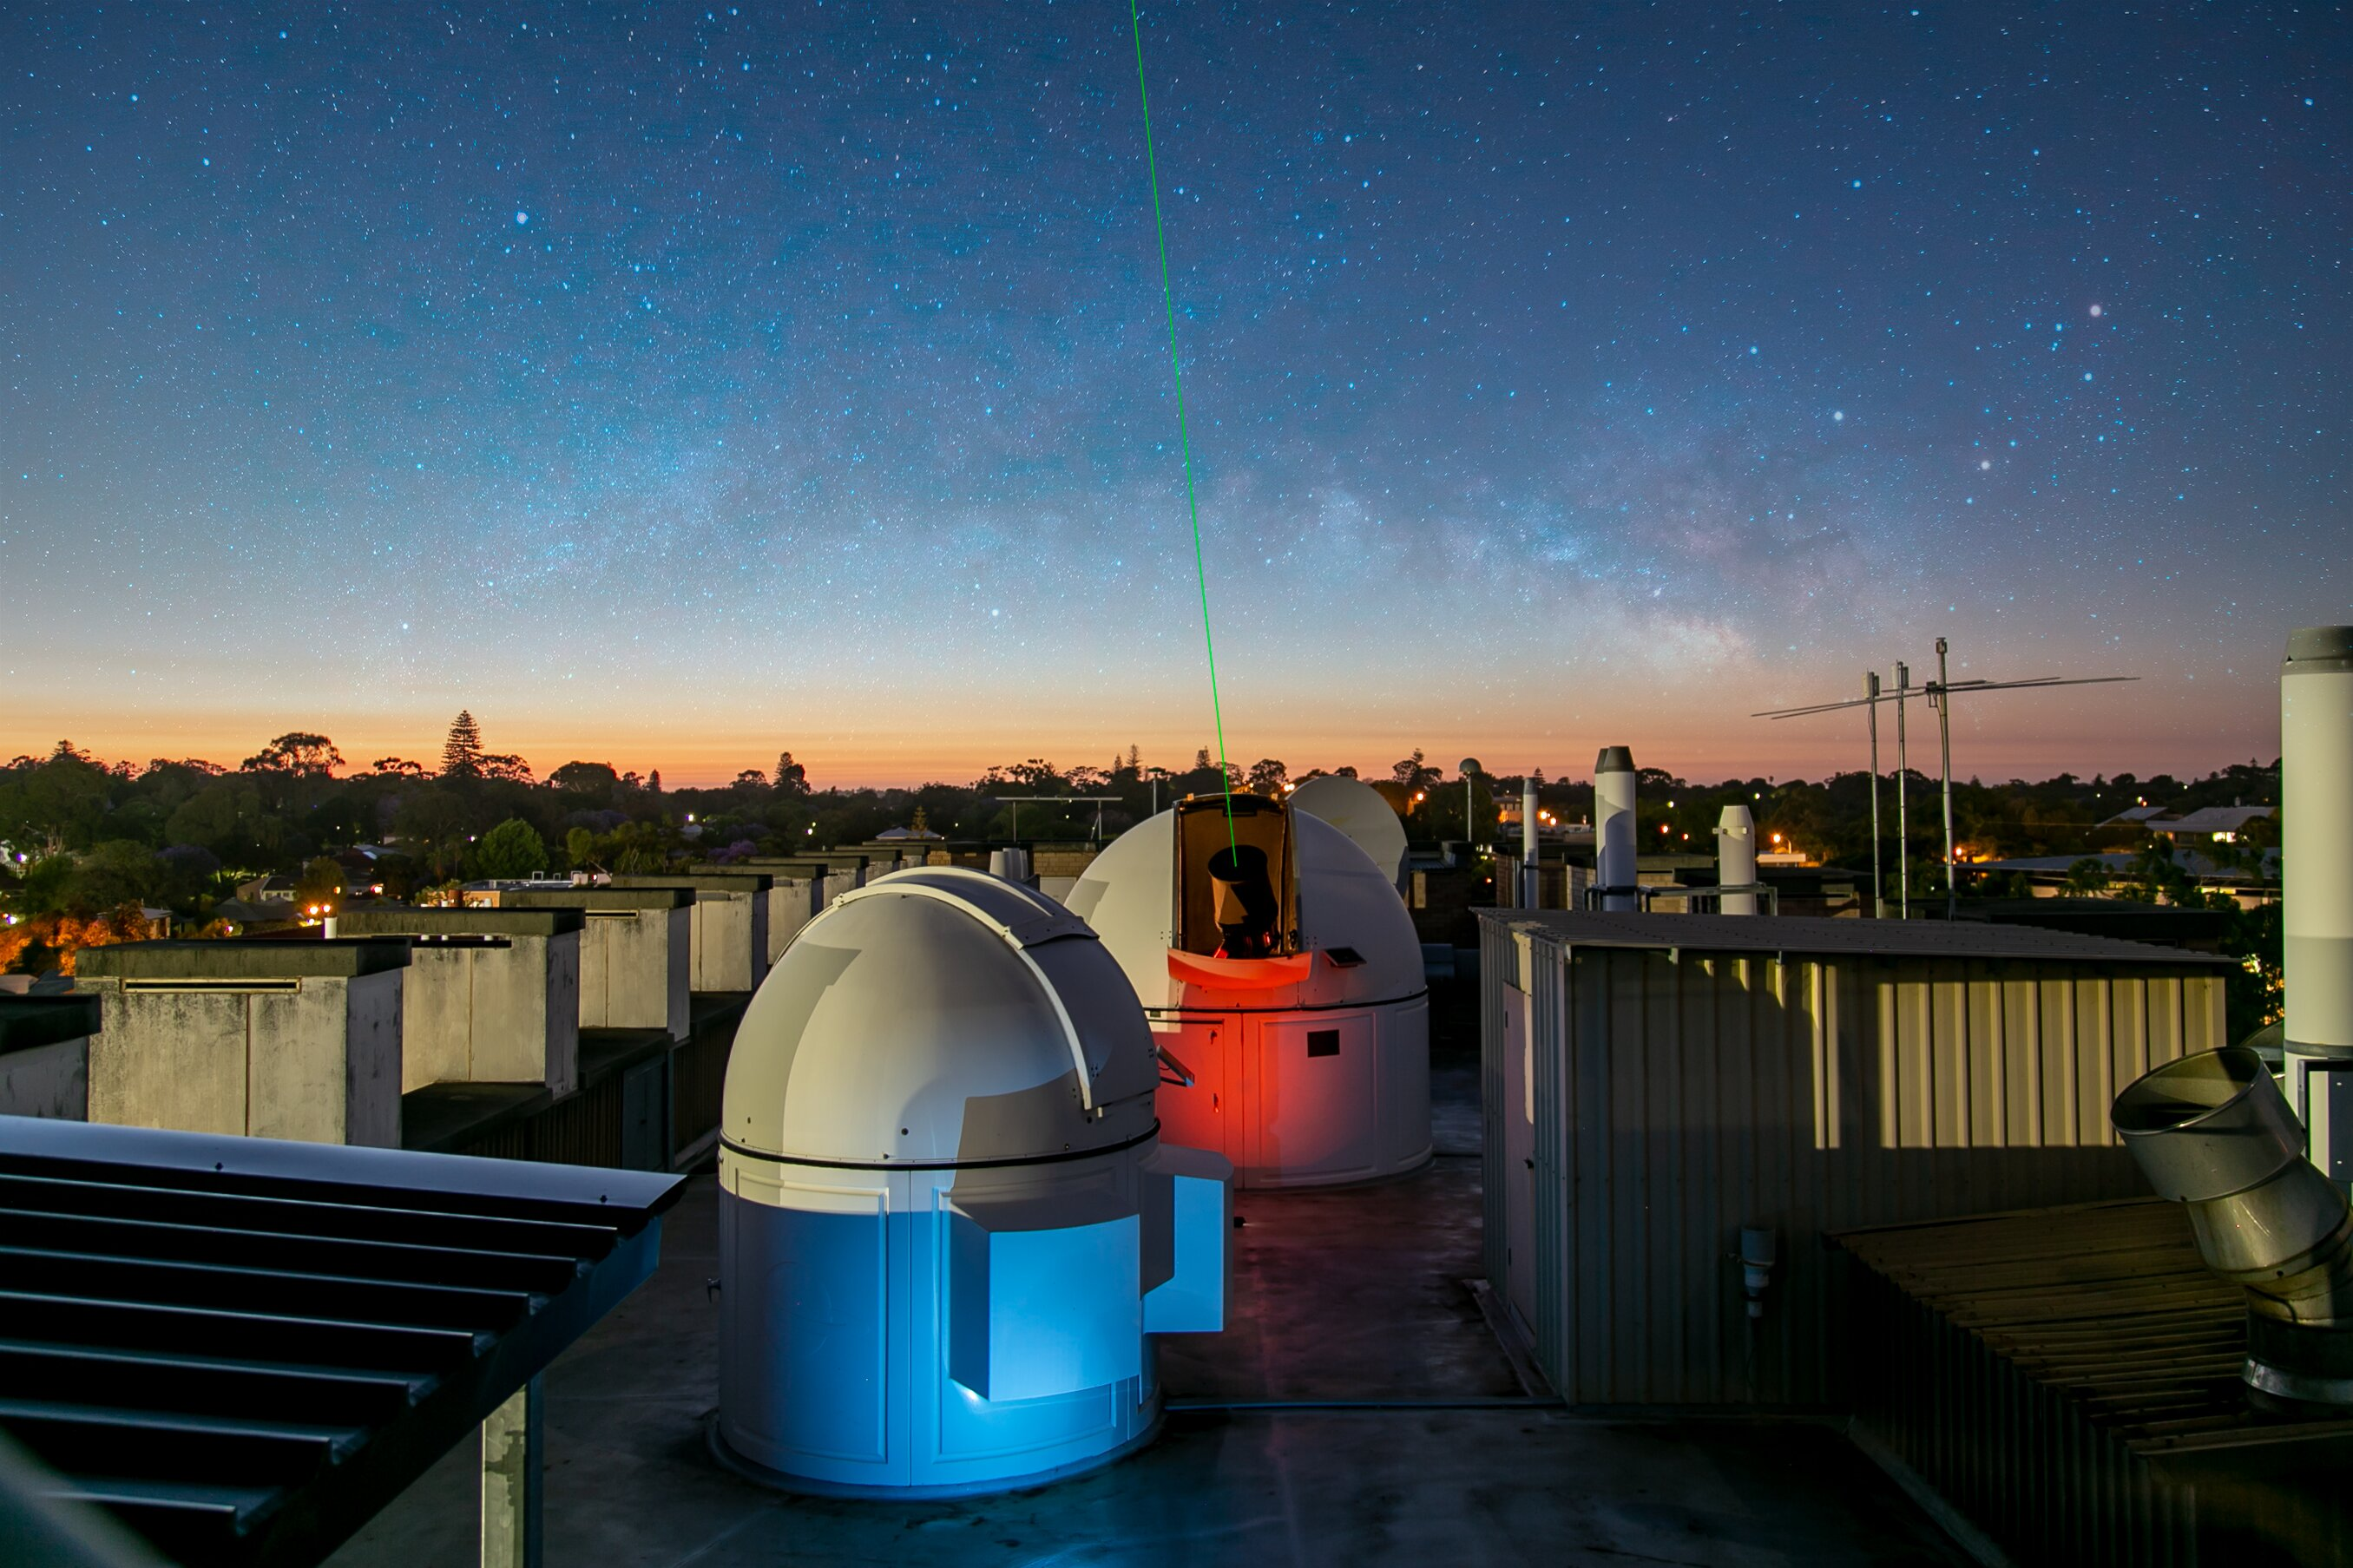 Most Stable Laser Link Ever Could Help Us Test Established Physics Theories